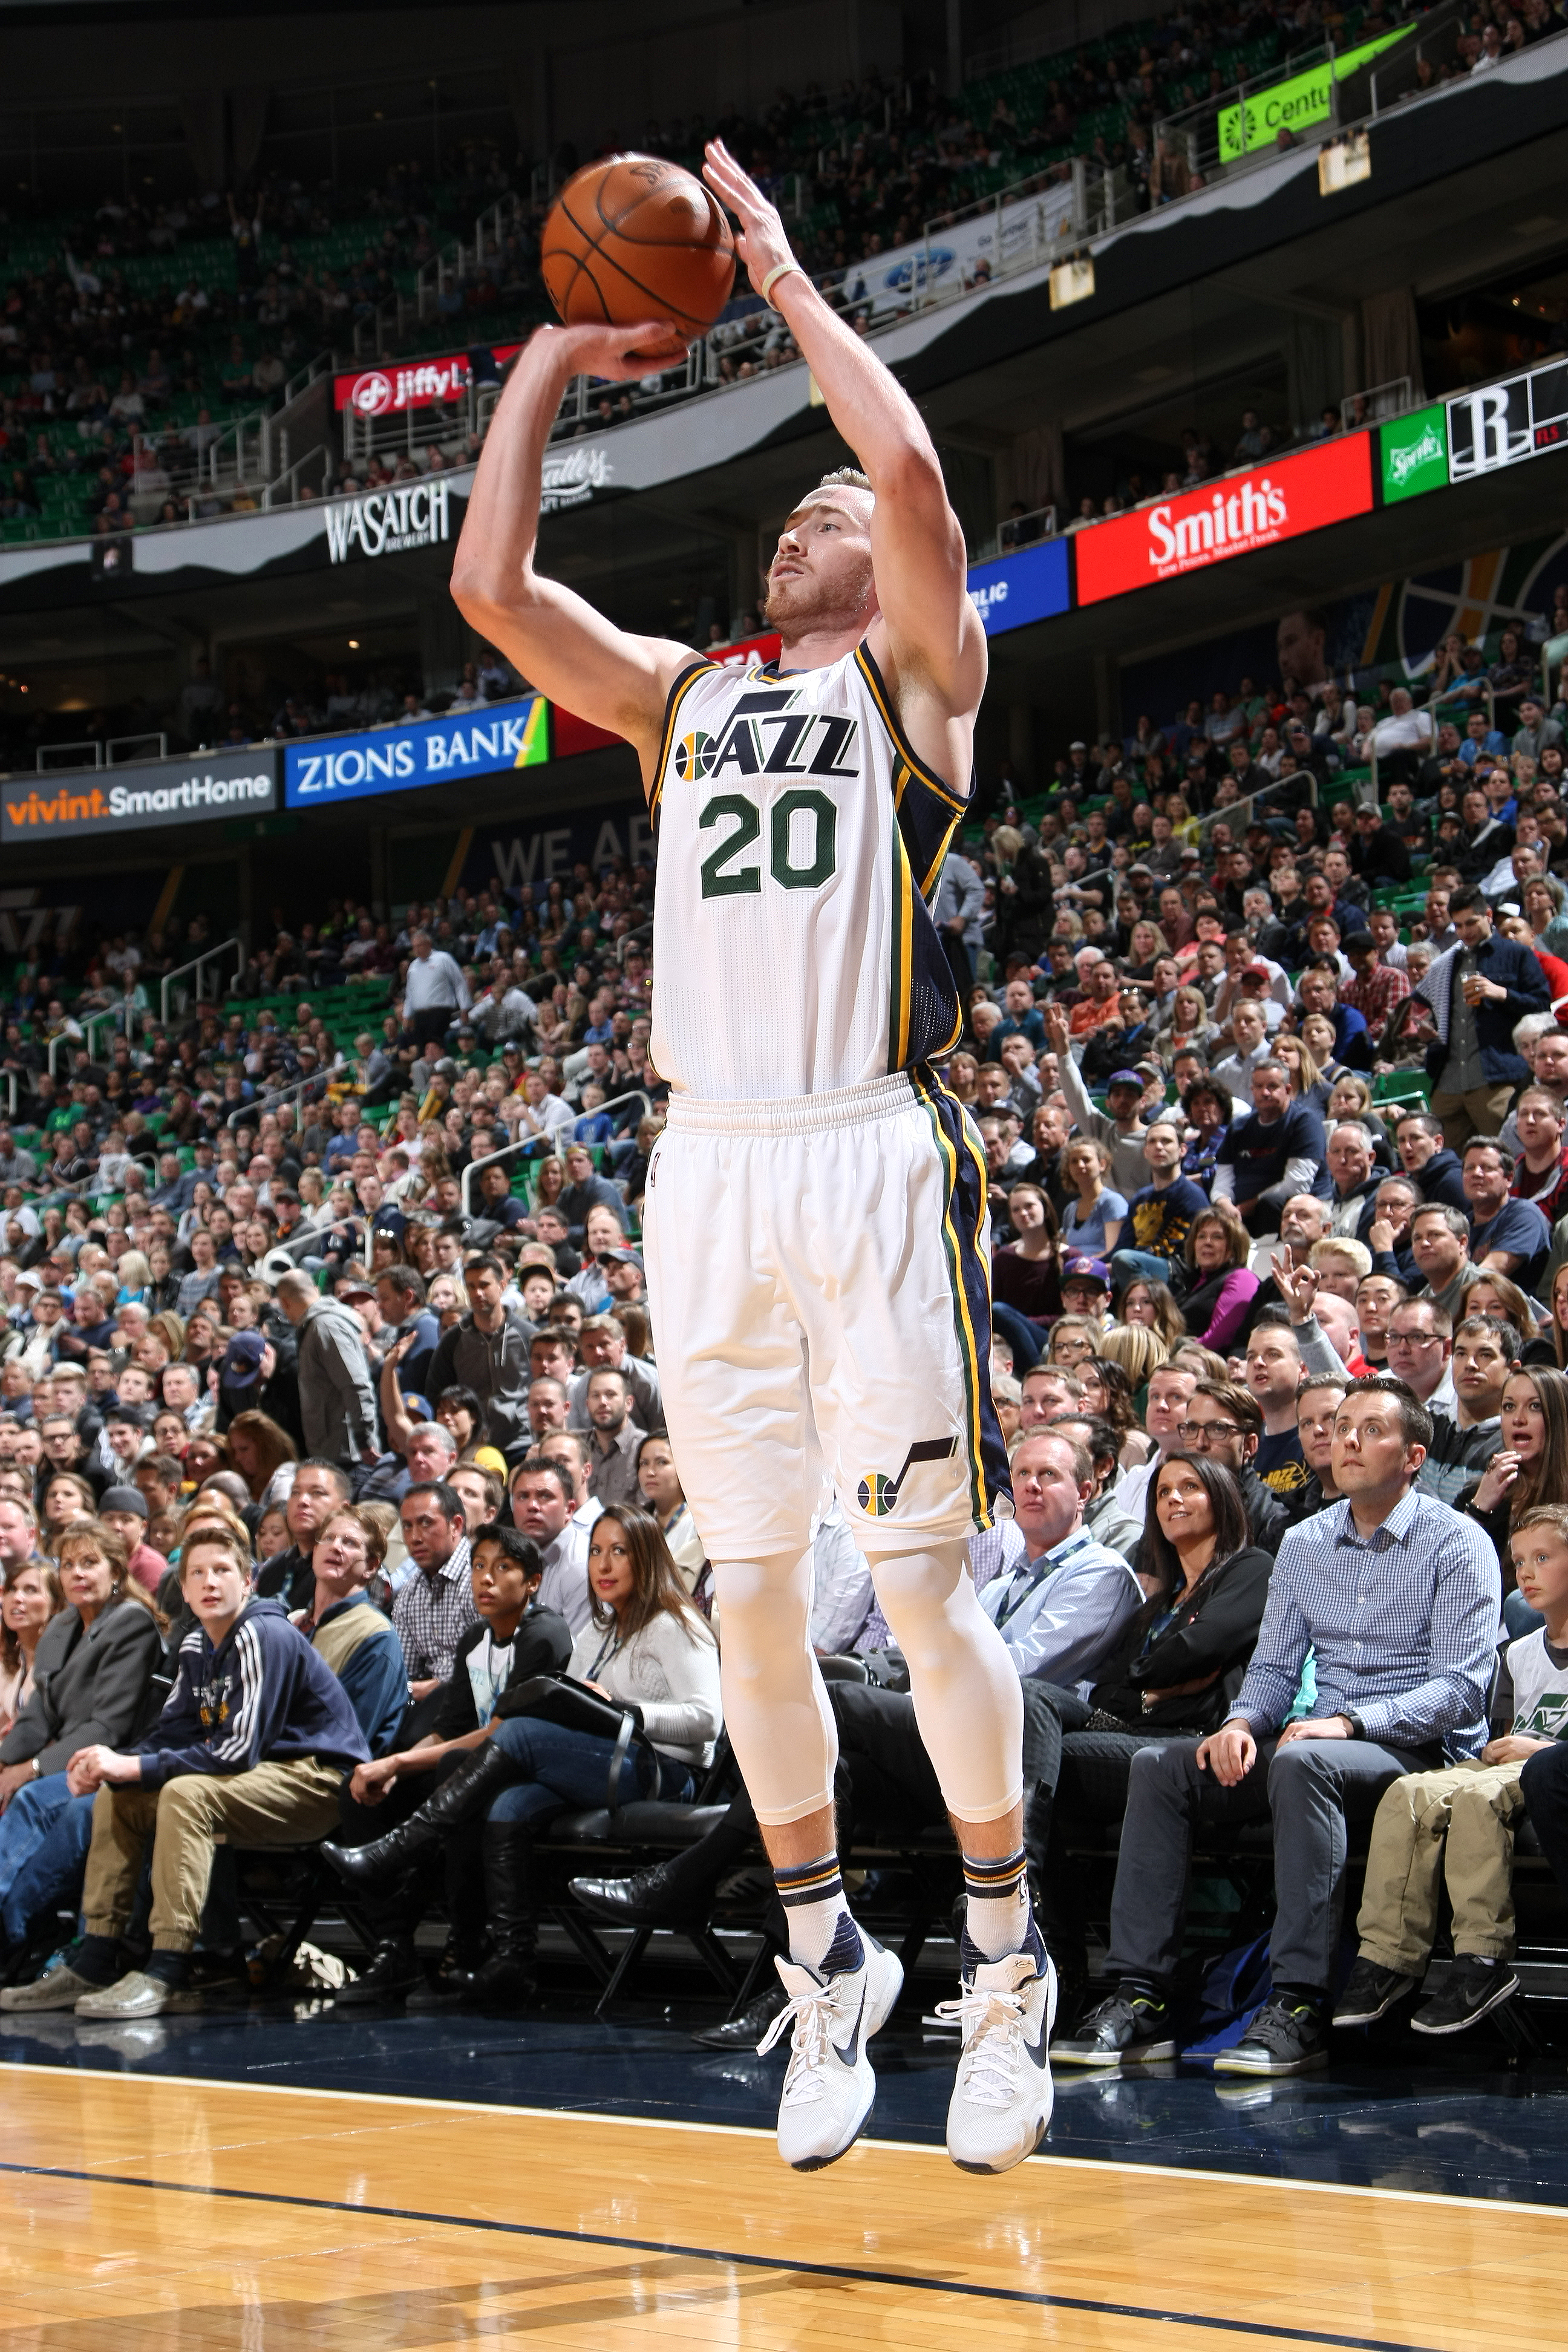 SALT LAKE CITY, UT - FEBRUARY 23: Gordon Hayward #20 of the Utah Jazz shoots the ball during the game against the Houston Rockets on February 23, 2016 at EnergySolutions Arena in Salt Lake City, Utah. (Photo by Melissa Majchrzak/NBAE via Getty Images)